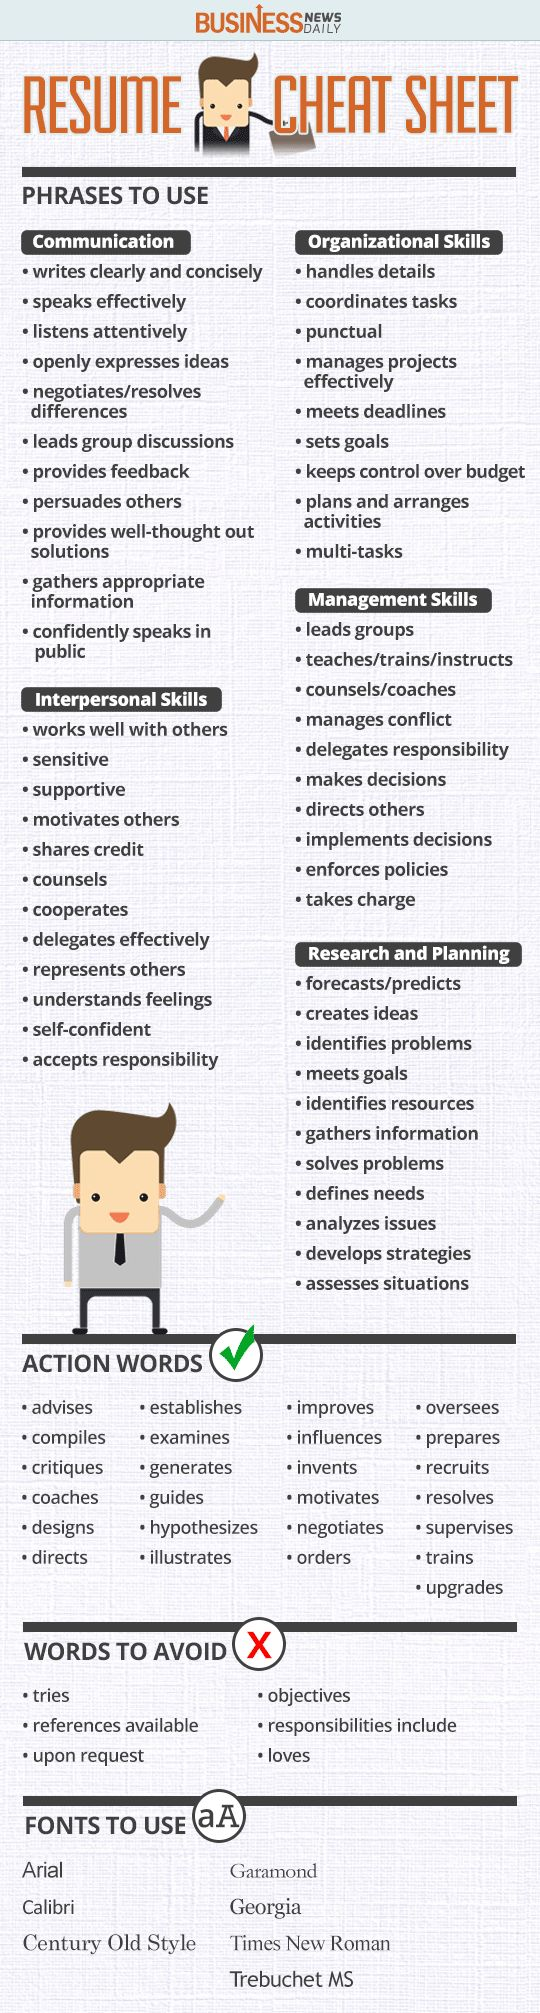 Opposenewapstandardsus  Outstanding  Ideas About Resume On Pinterest  Cv Format Resume  With Inspiring Resume Cheat Sheet Infographic Andrews Almost Done With A Complete Unit On Employment Which With Amazing Objective Statement Resume Also Free Printable Resume In Addition Pongo Resume And Computer Skills For Resume As Well As Entry Level Resume Examples Additionally How To Make A Cover Letter For A Resume From Pinterestcom With Opposenewapstandardsus  Inspiring  Ideas About Resume On Pinterest  Cv Format Resume  With Amazing Resume Cheat Sheet Infographic Andrews Almost Done With A Complete Unit On Employment Which And Outstanding Objective Statement Resume Also Free Printable Resume In Addition Pongo Resume From Pinterestcom